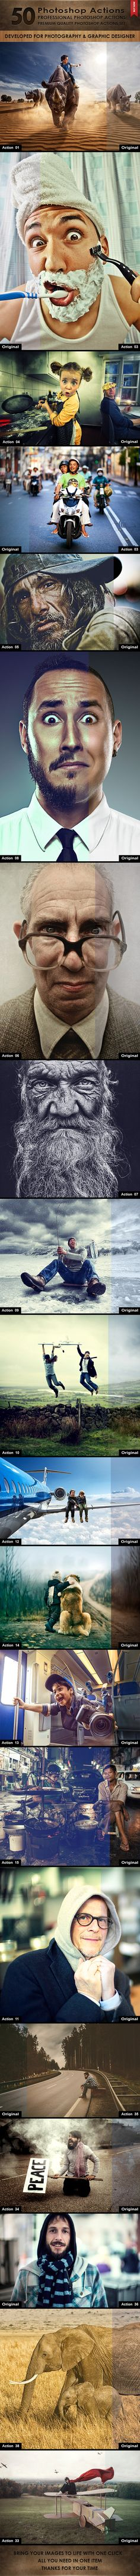 50 Photoshop Actions #photoeffect Download: http://graphicriver.net/item/50-photoshop-actions/10114086?ref=ksioks